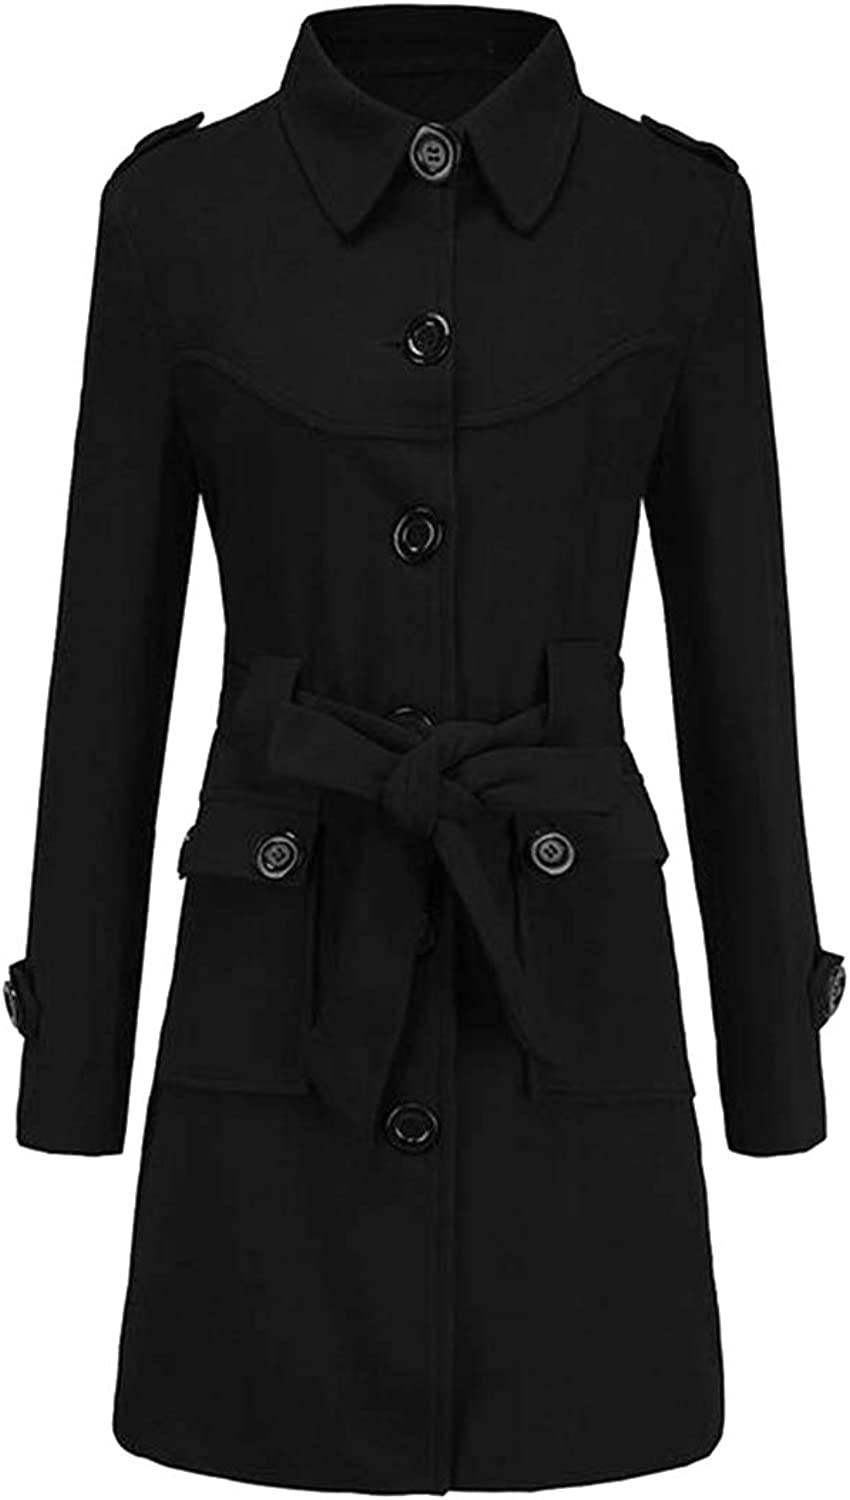 SHOWNO Women's Slim Split Single Breasted Solid Belted Wool Blend Trench Pea Coat Overcoat